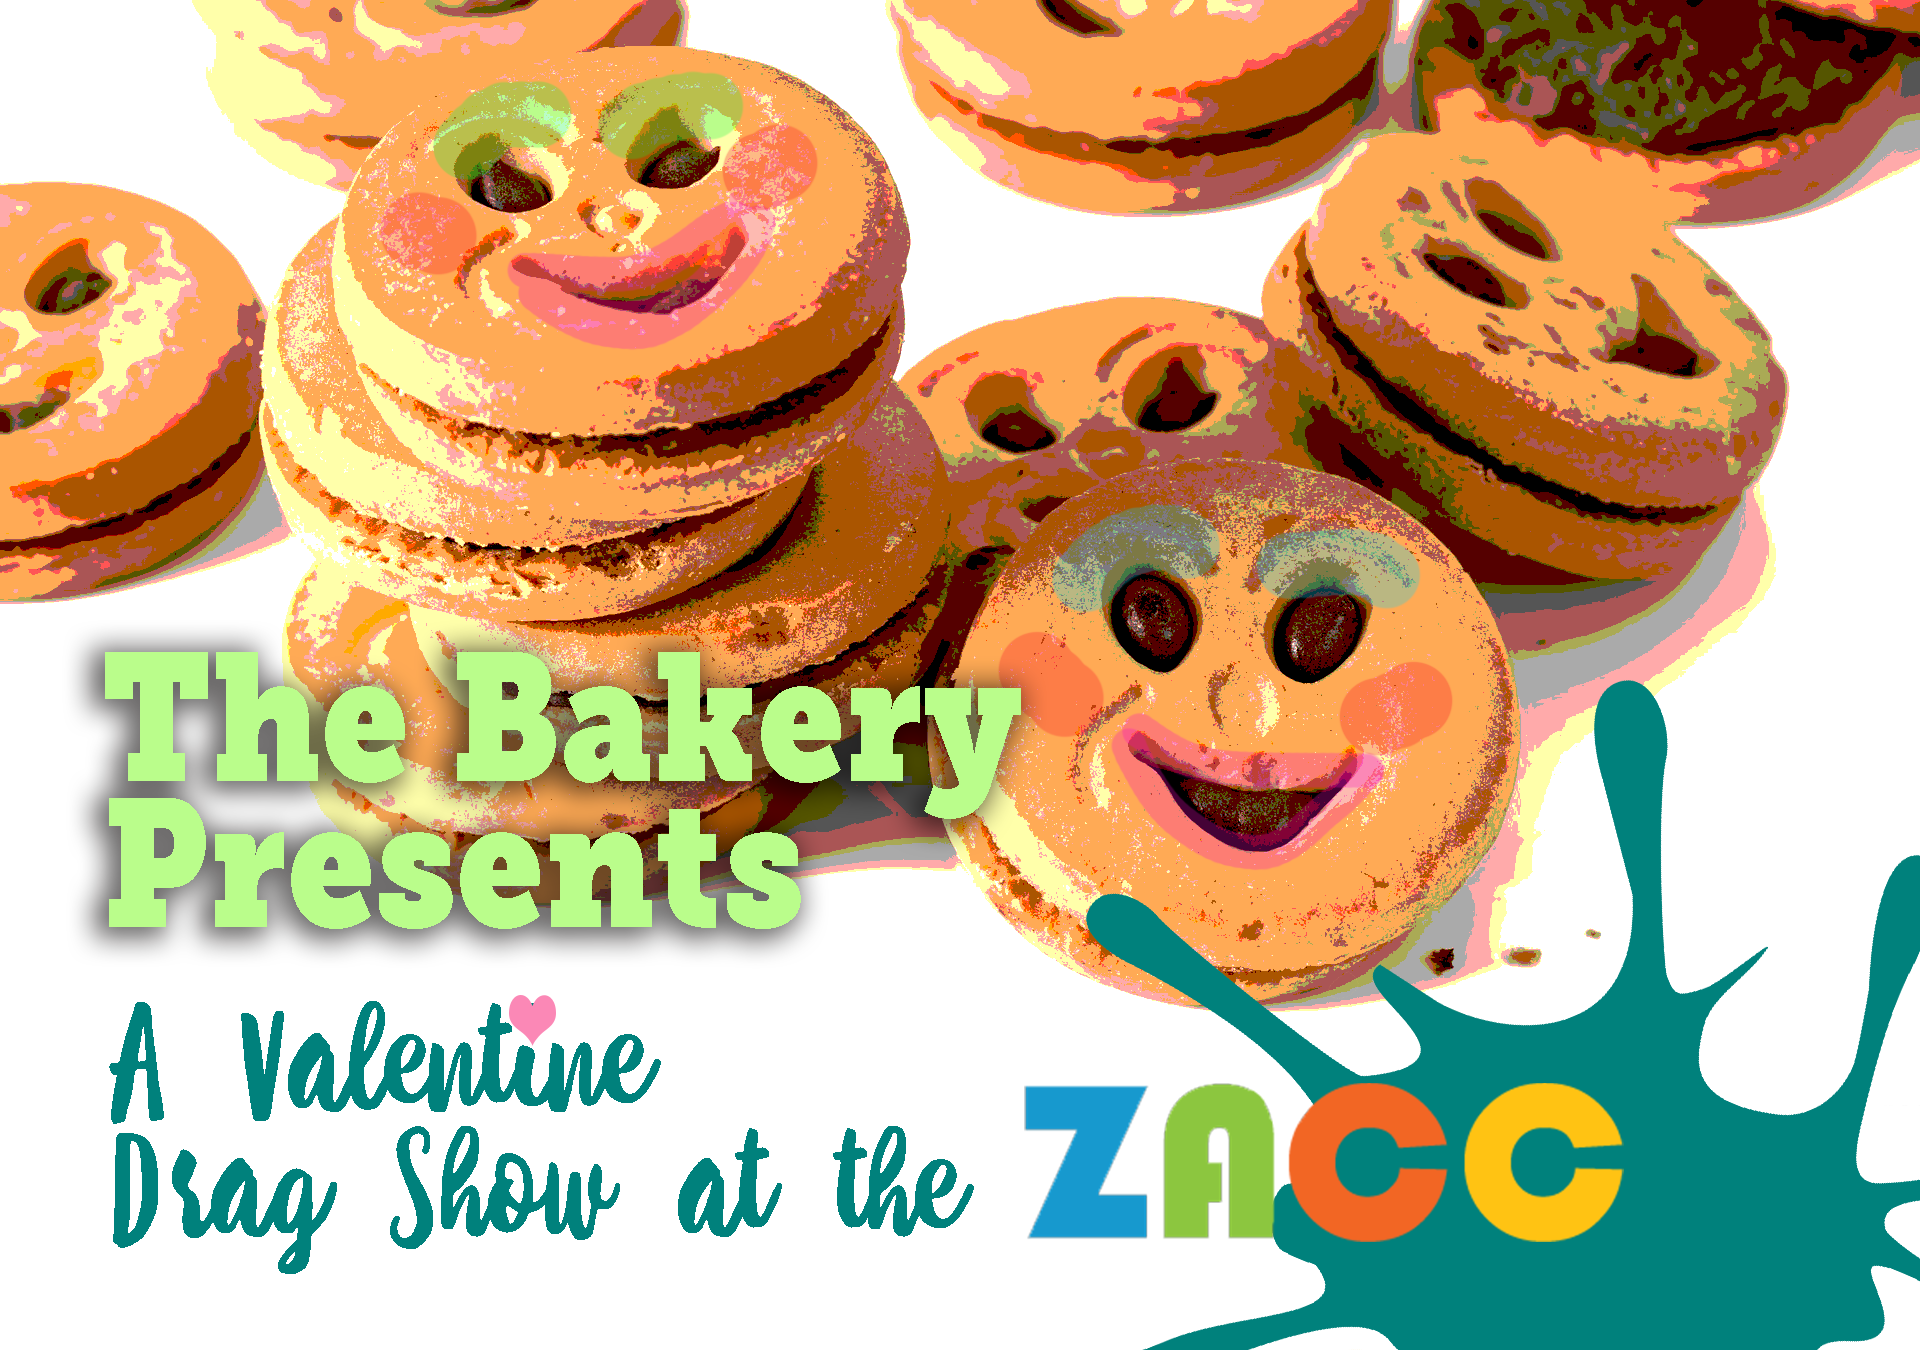 The Bakery Presents: A Valentine Drag Show at the ZACC